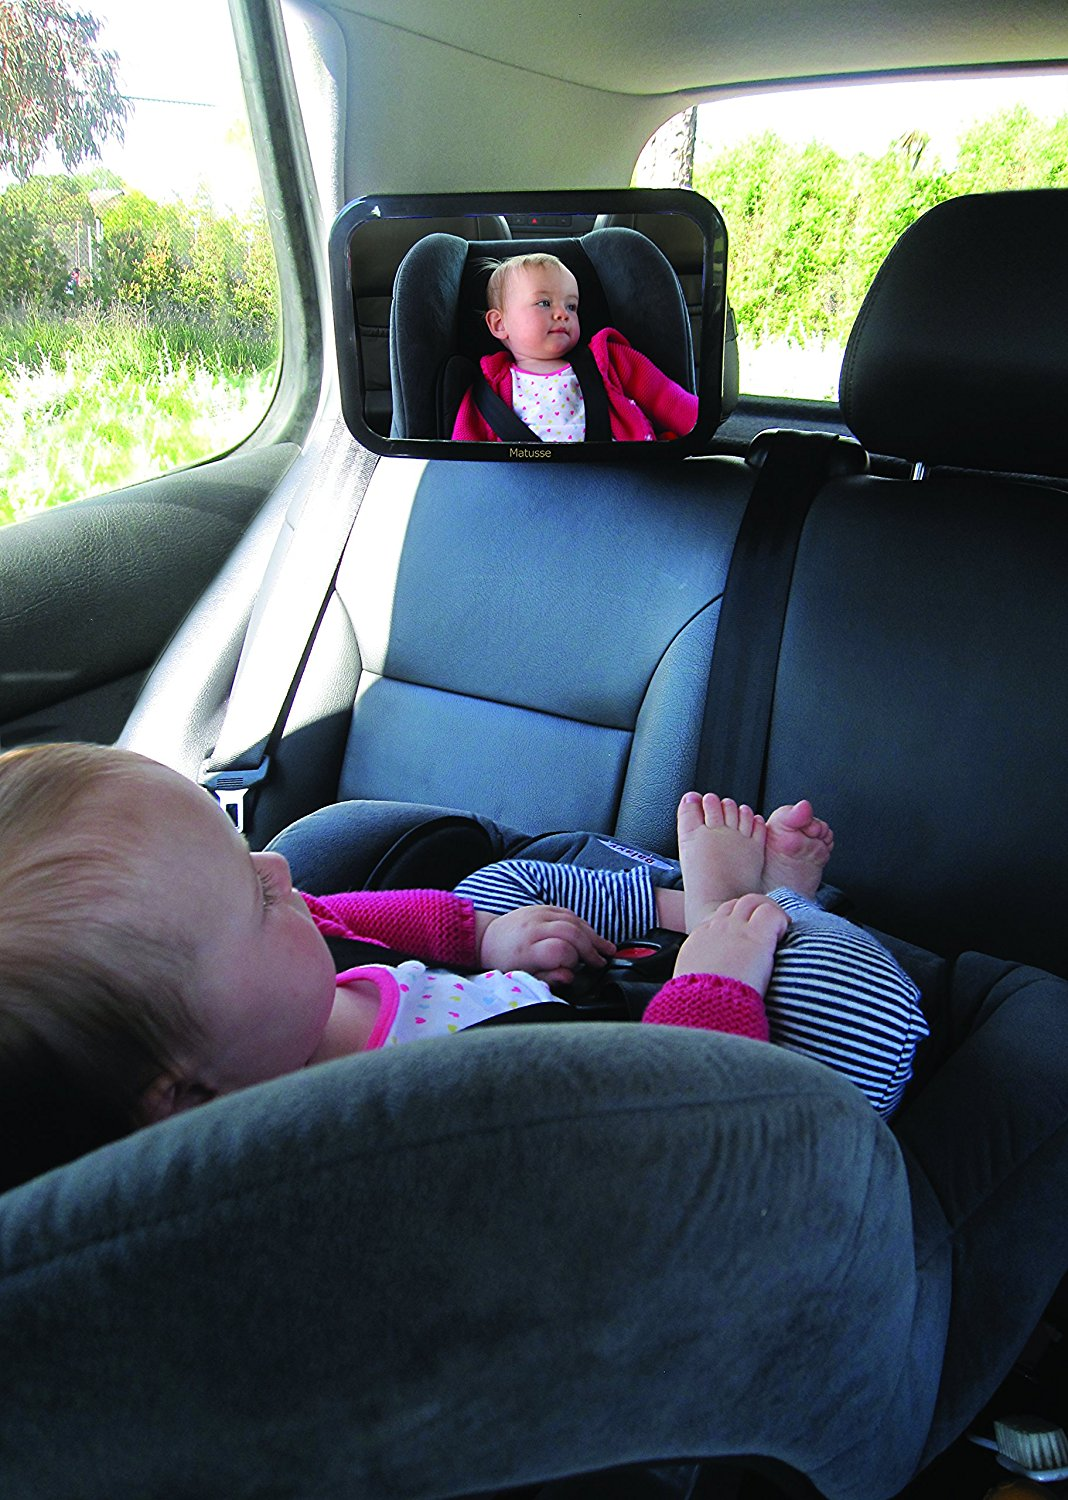 Top 8 Best Baby Car Mirror For Safe Travel - Rear Facing Car Seat Mirrors